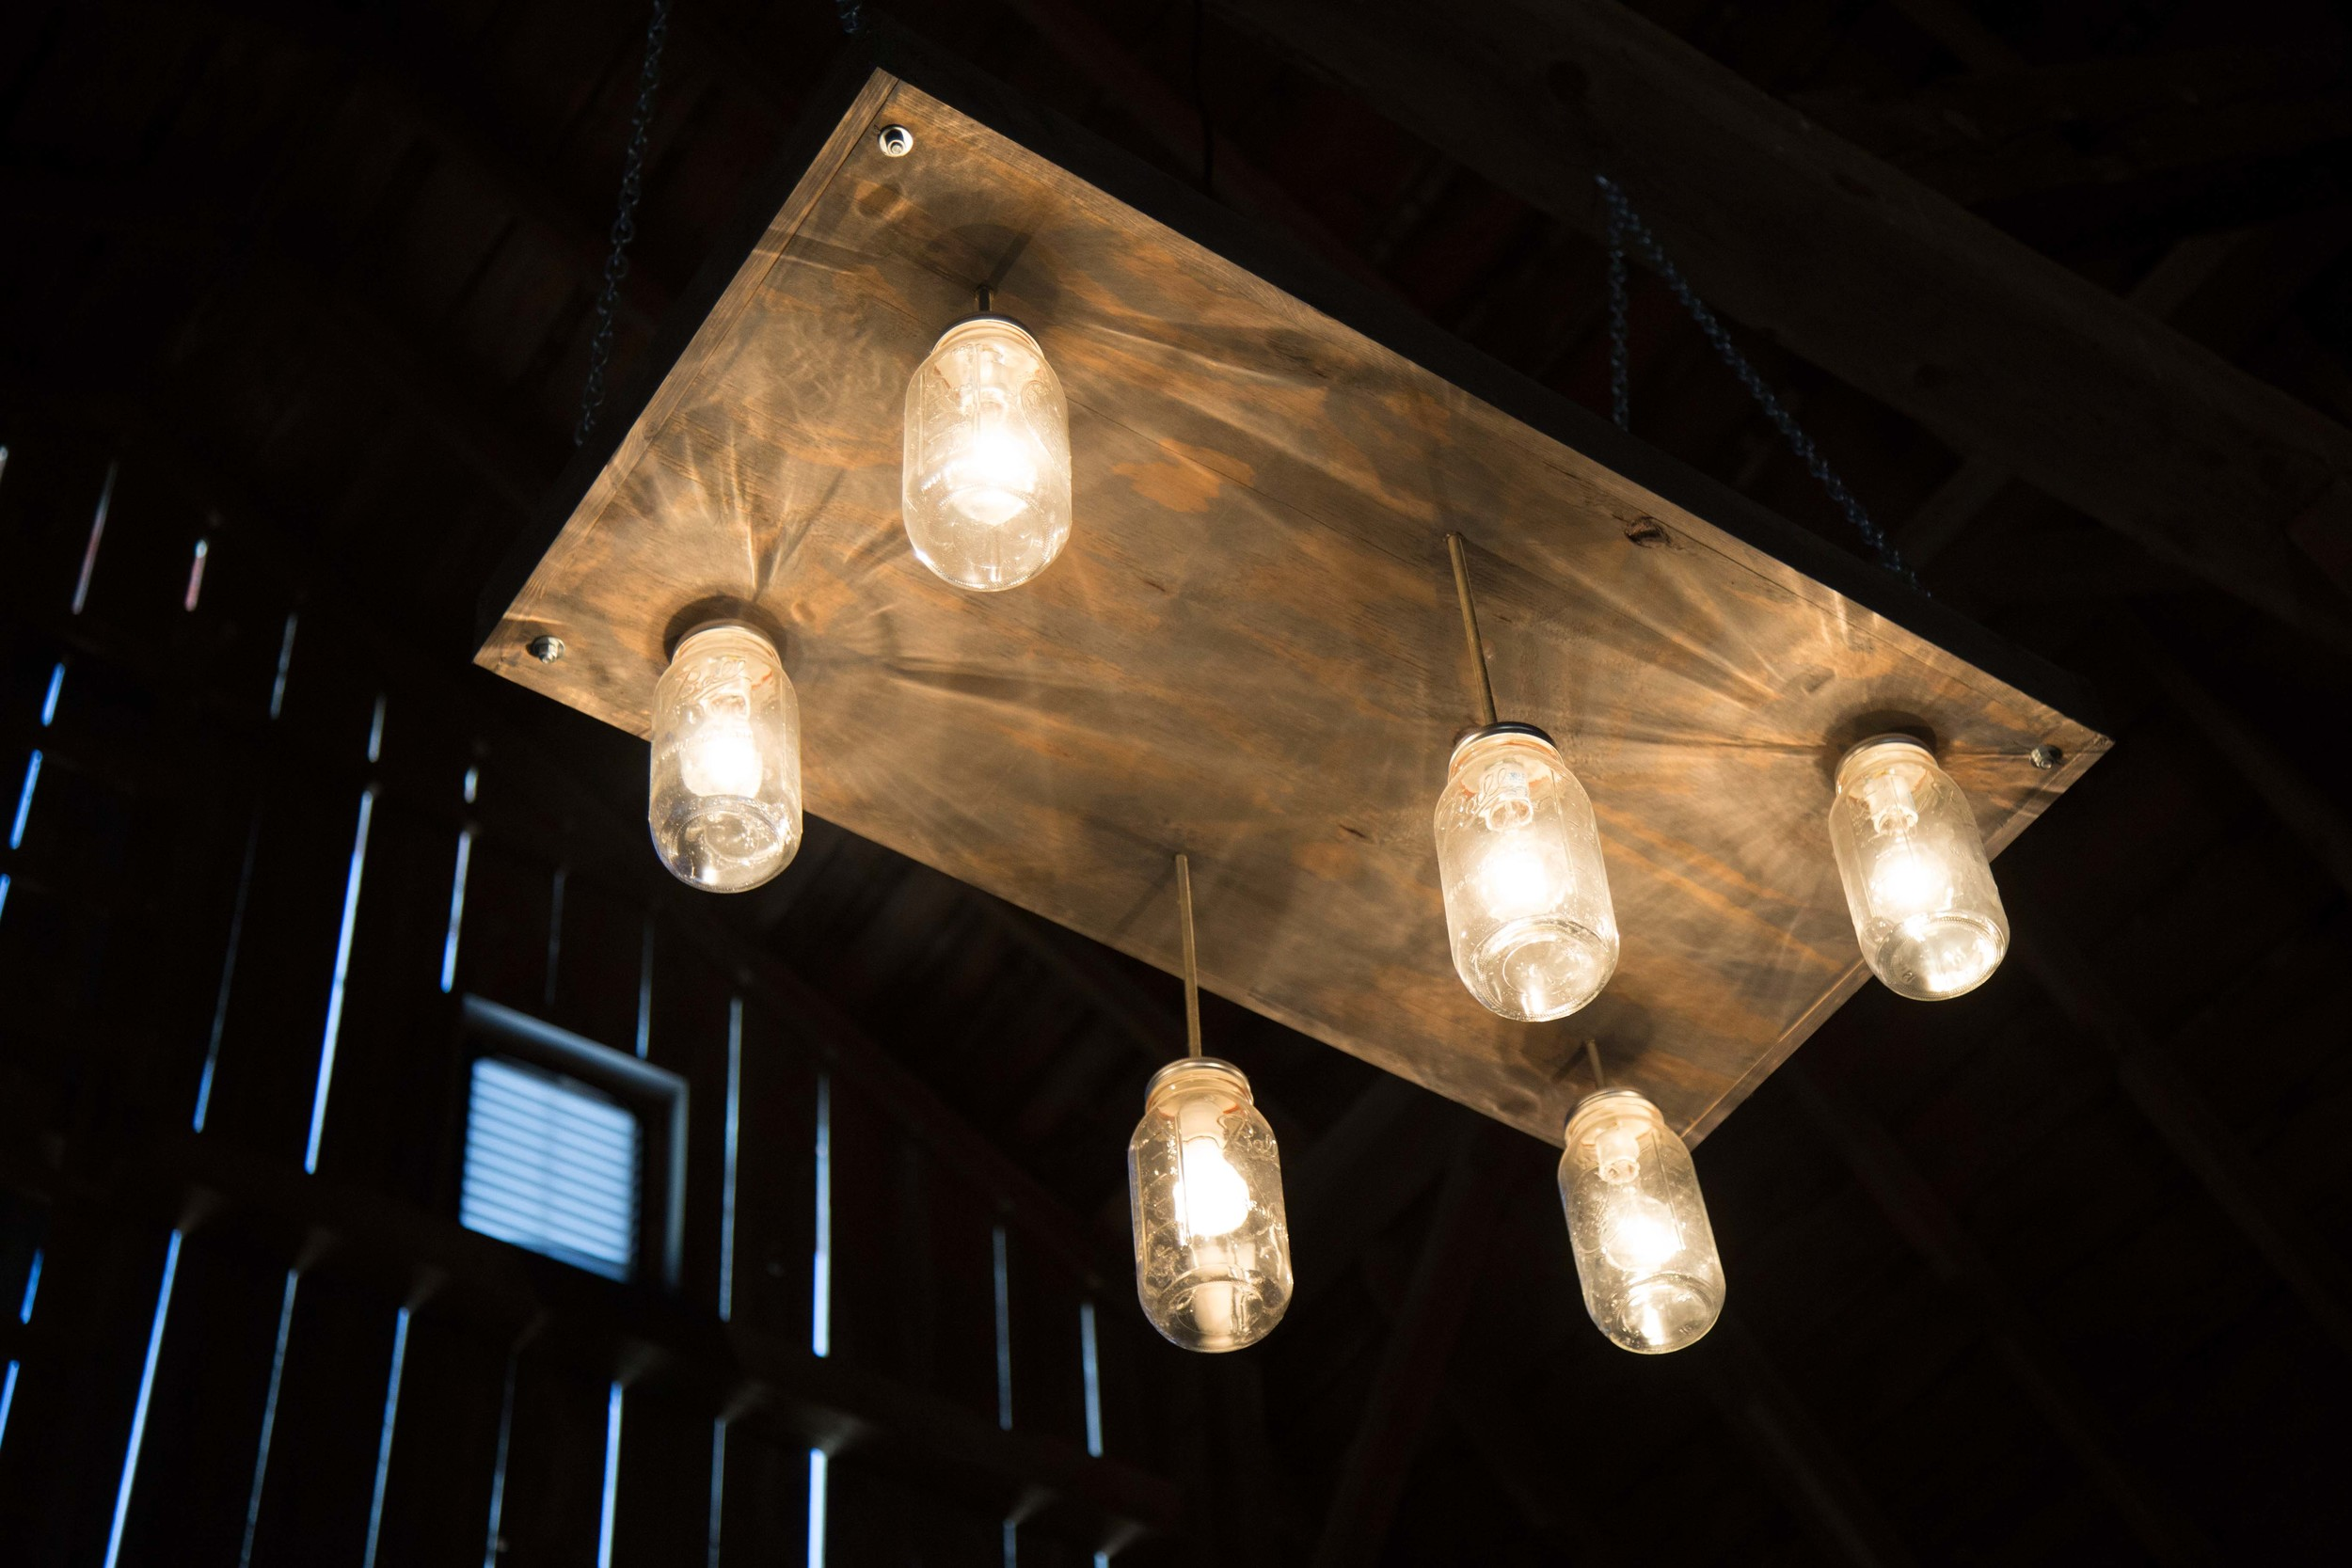 6_19-Barn_Mason_Jar_Chandelier_5752 2.jpg